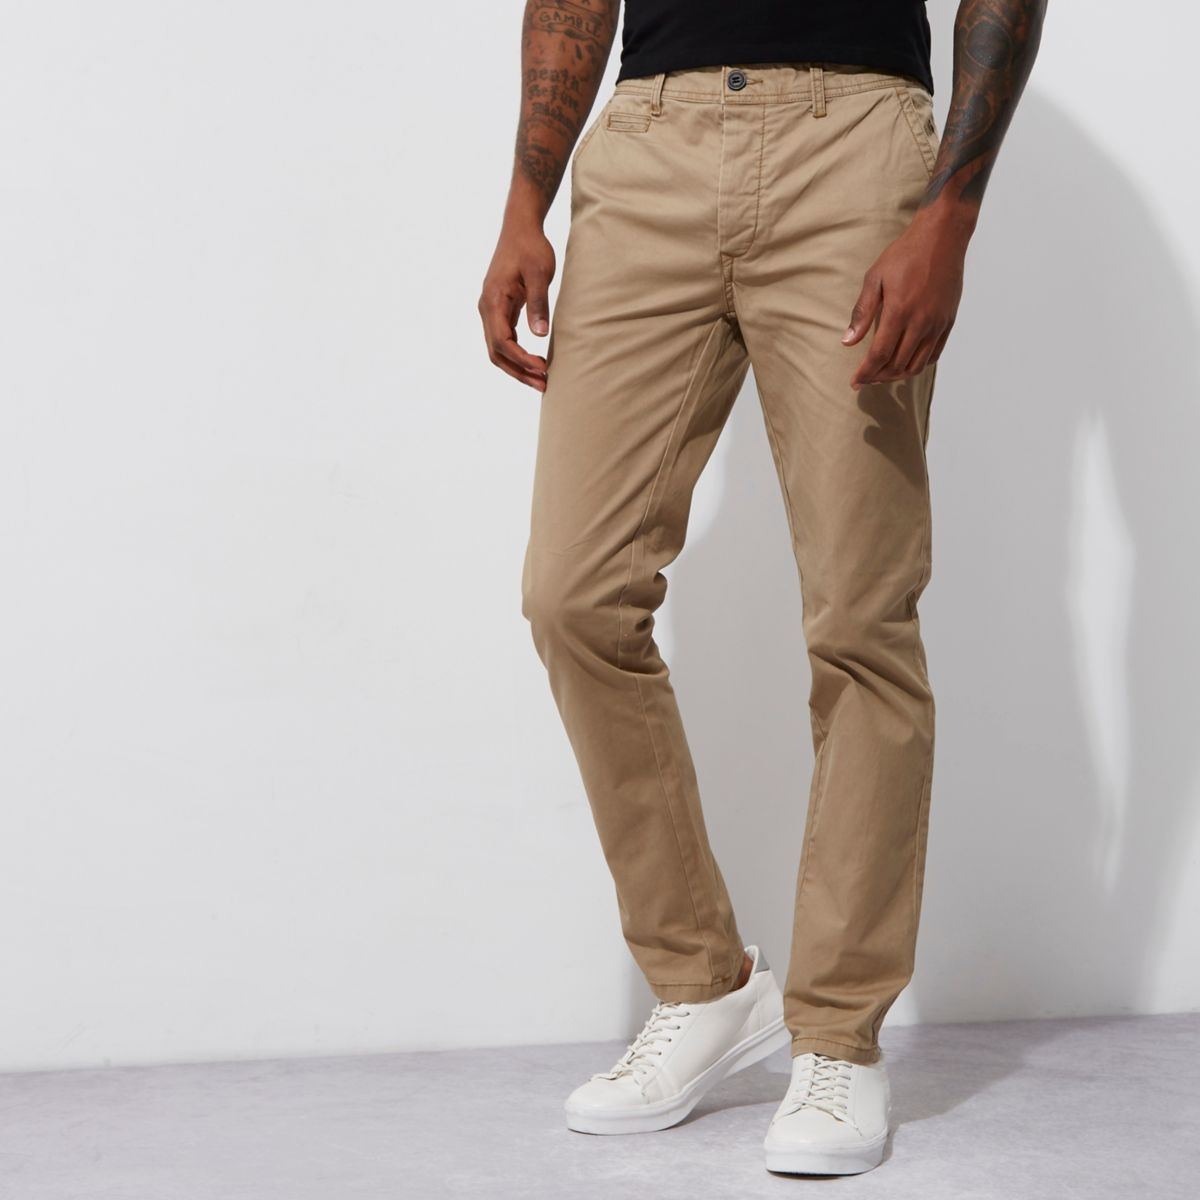 For light, stretchy, comfy, slick men's pants, check out cargo joggers, stadium sweatpants or performance logo pants to warm-up on the court or kick it cool-like on a Friday night. Your opinion counts.